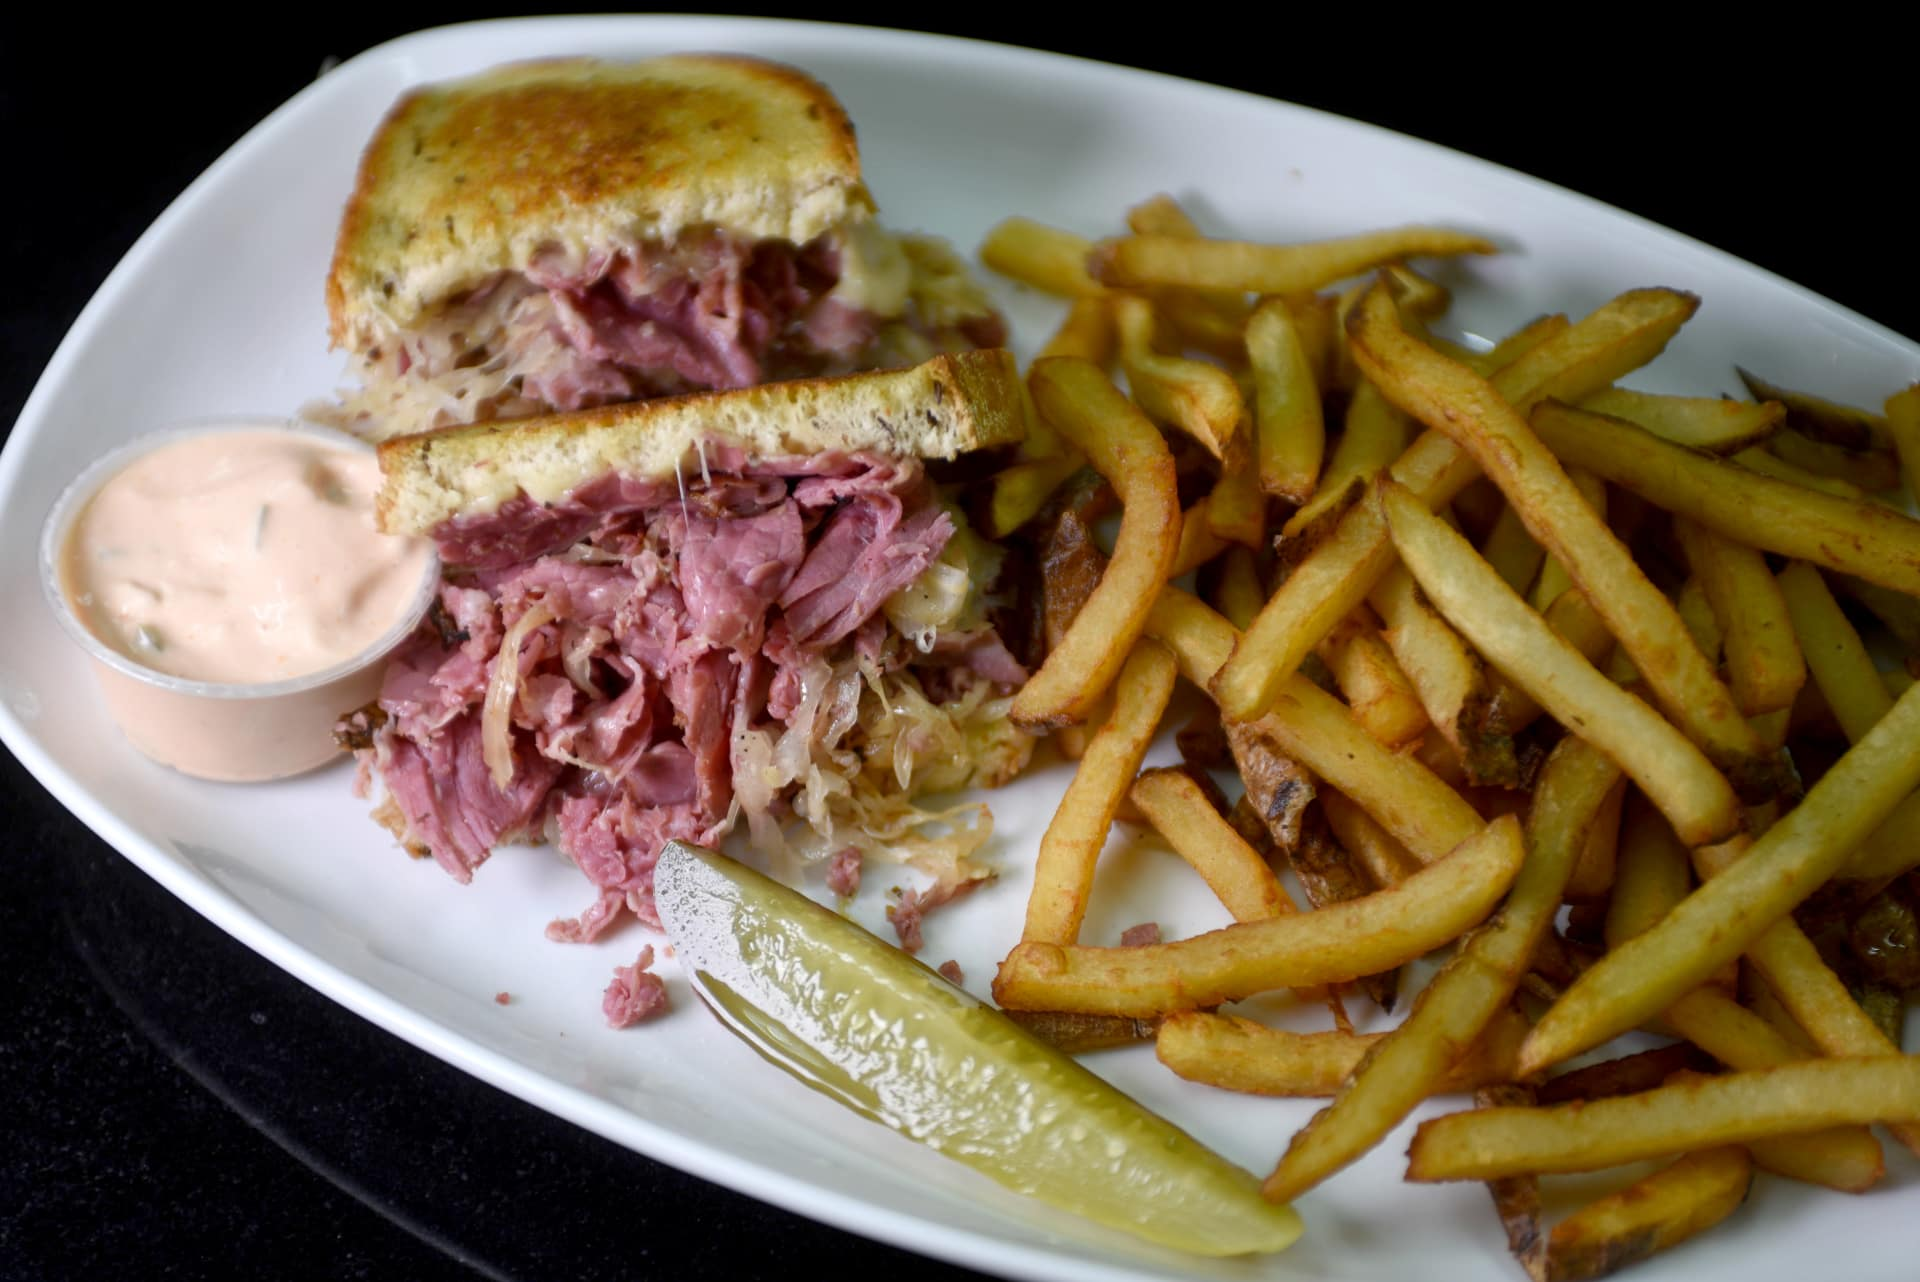 Reuben & French Fries